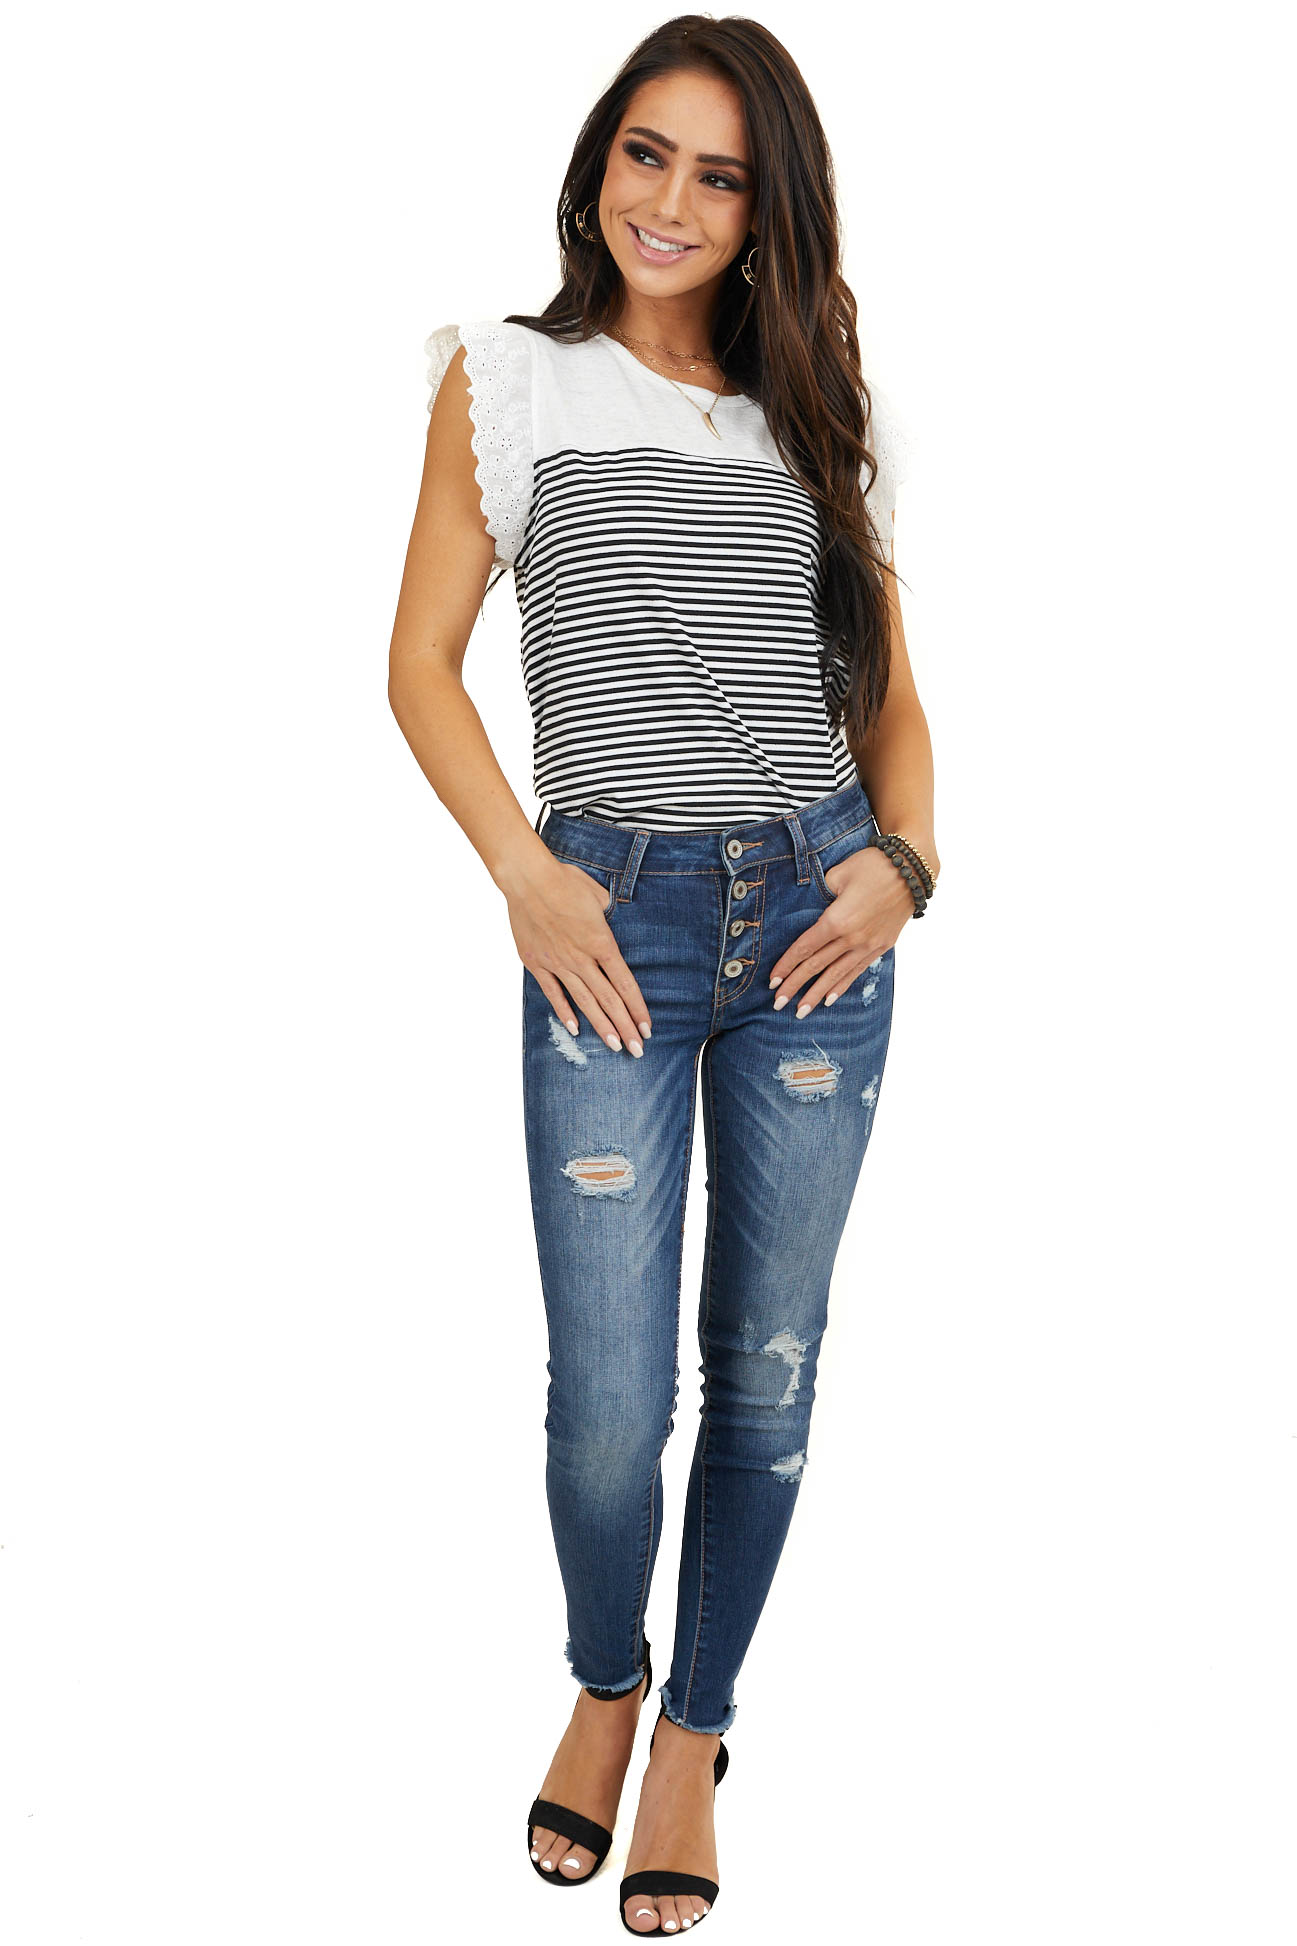 Black and White Striped Top with Short Eyelet Lace Sleeves